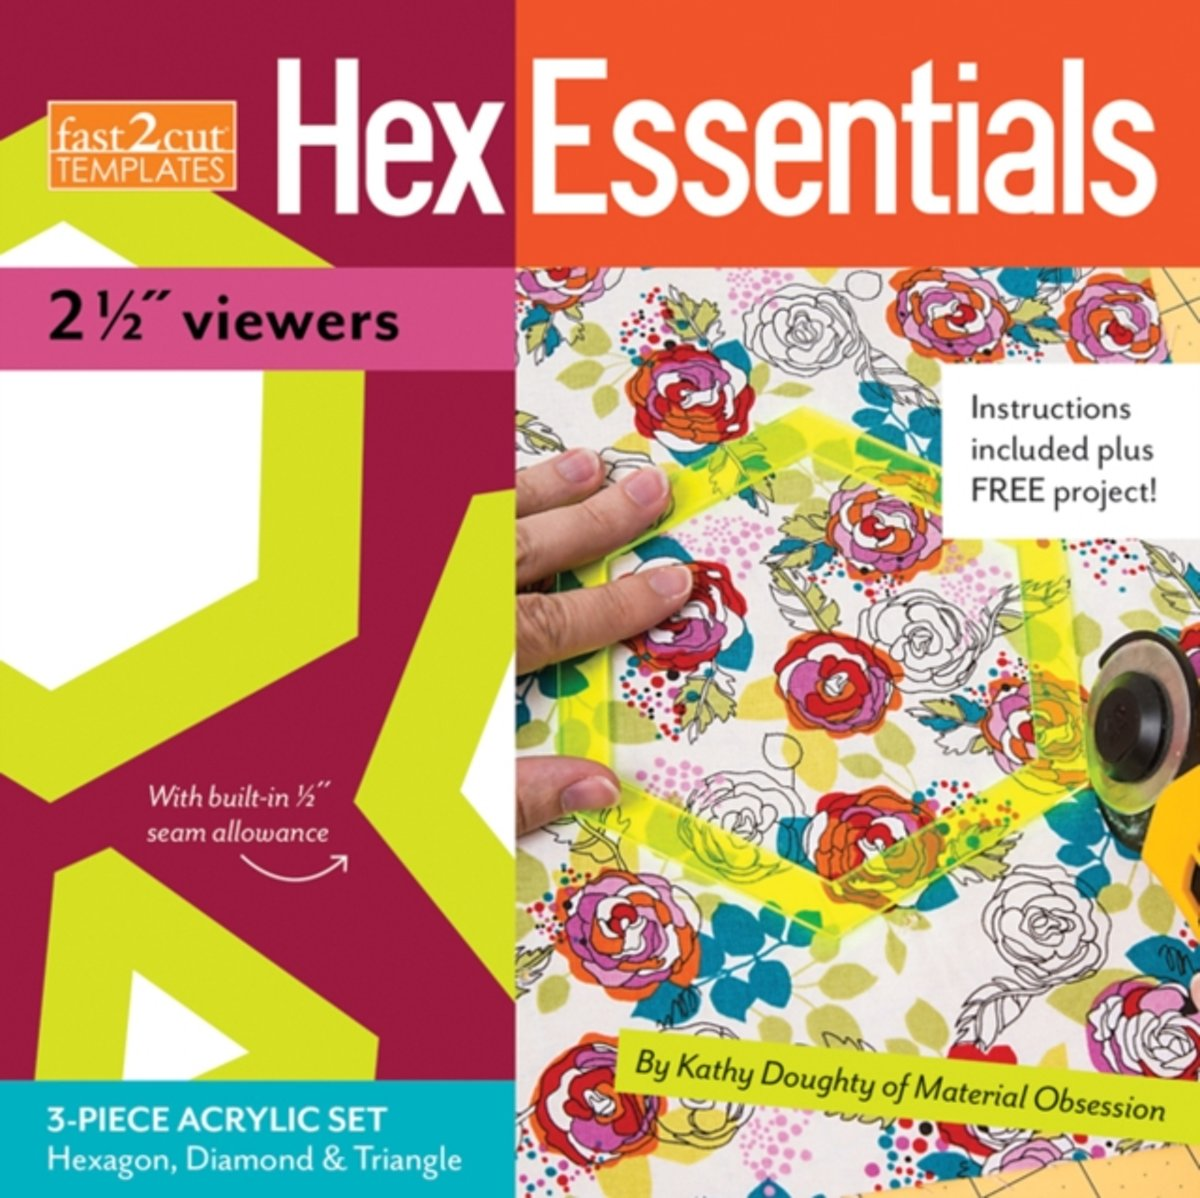 Fast2cut Hexessentials 21/2  Peepers